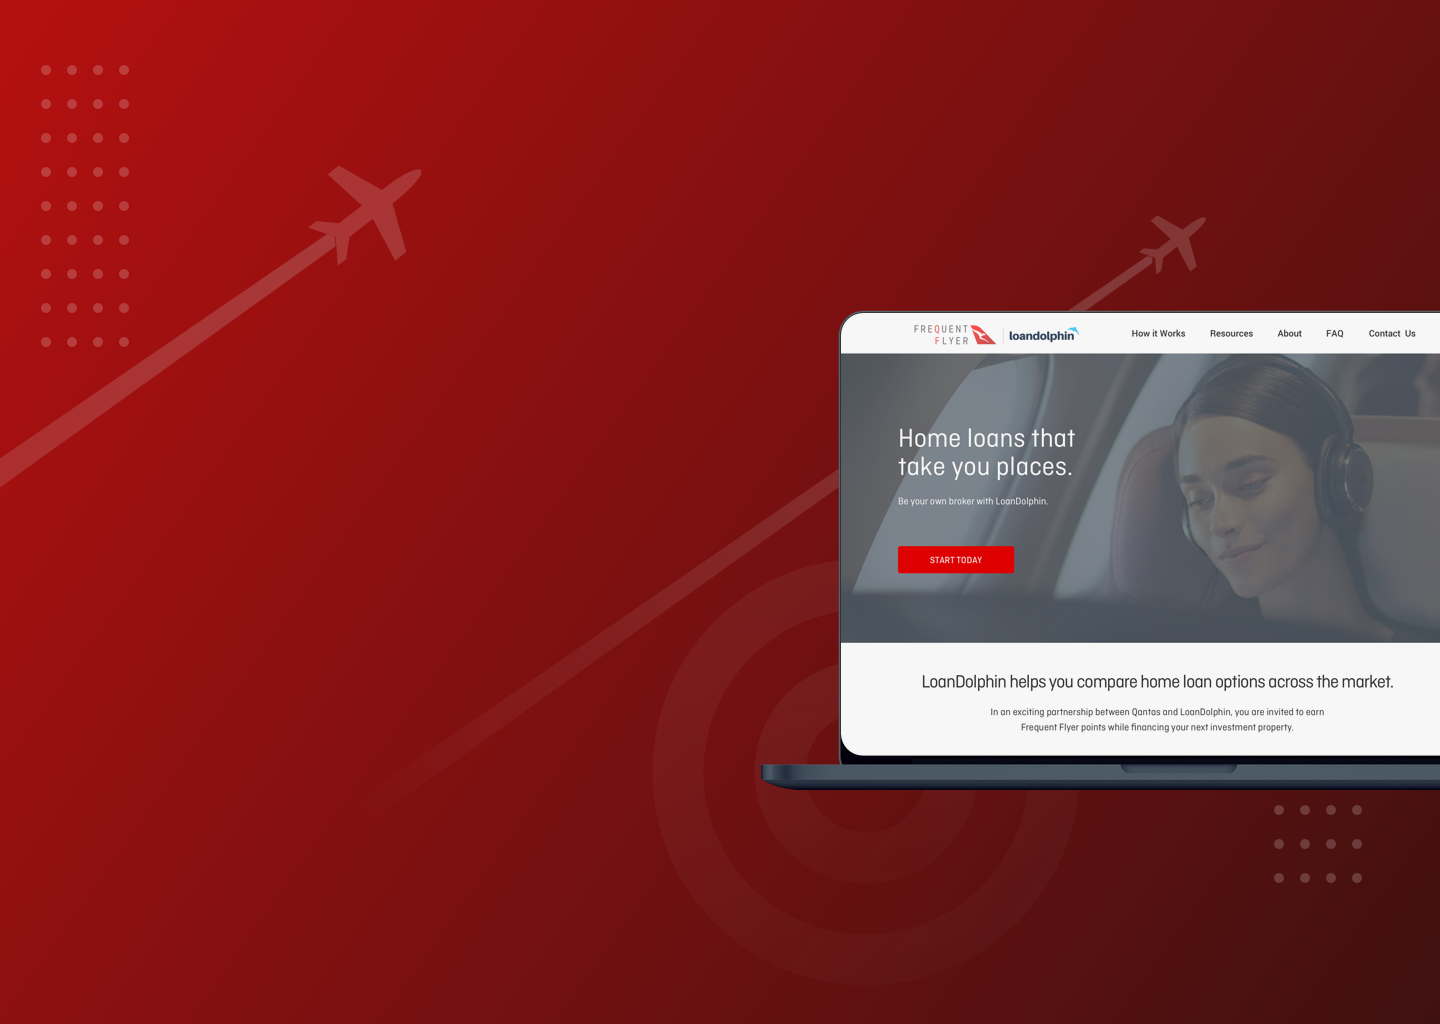 Qantas Innovation Group Ventures - Responsible for the strategy and experimentation to test the likelihood of adoption of a new service offering for Qantas Frequent Flyers.